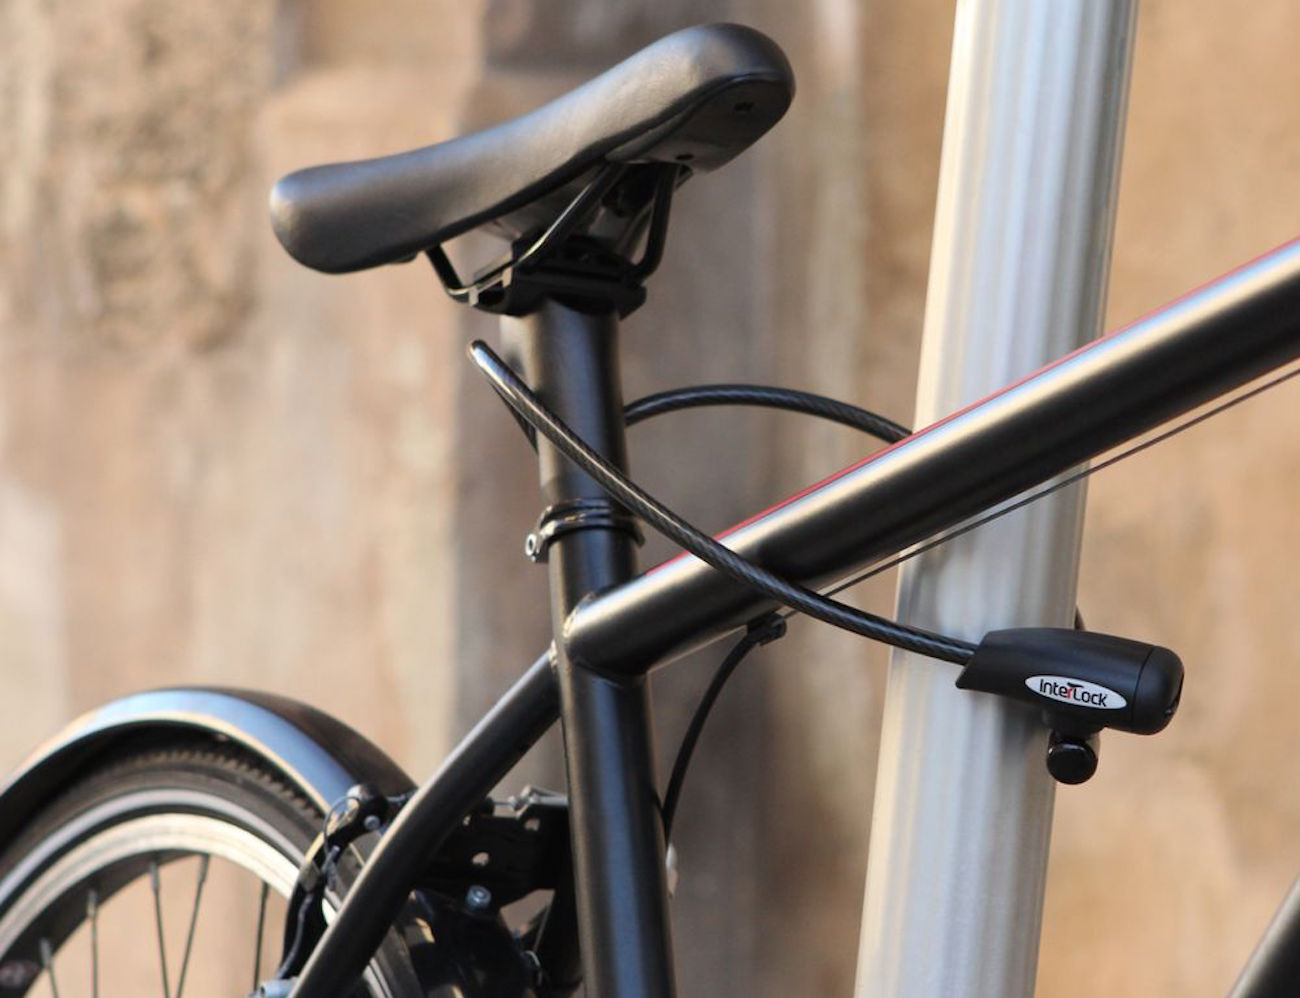 InterLock+Crosstown+Post+Bicycle+Lock